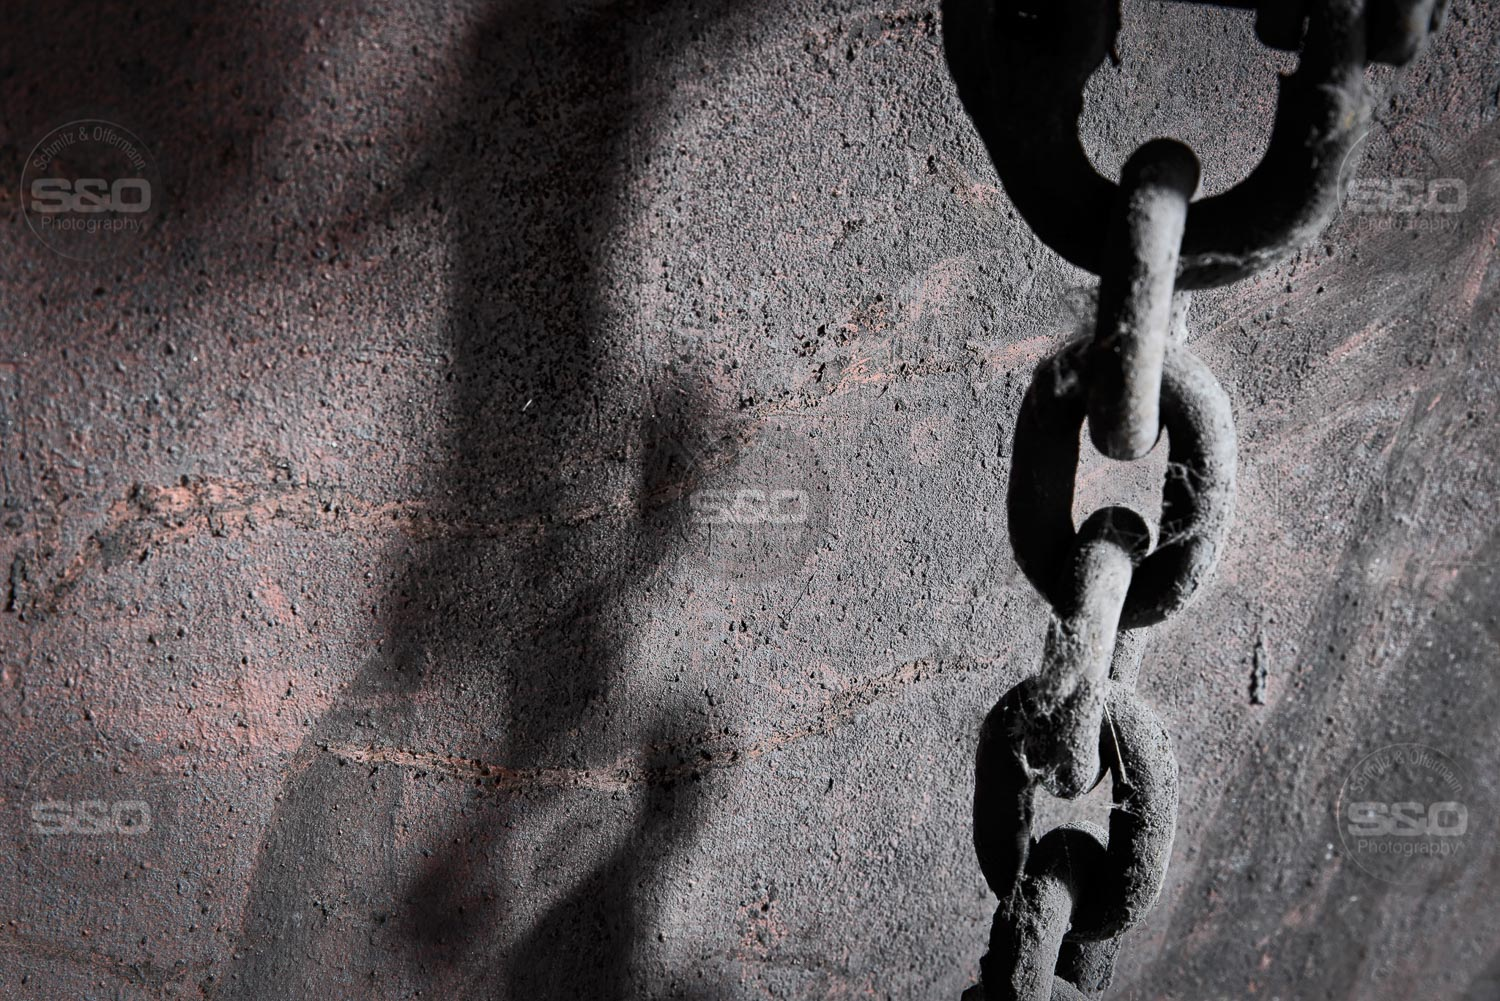 Urbex : The chain and its shadow / La chaîne et son ombre